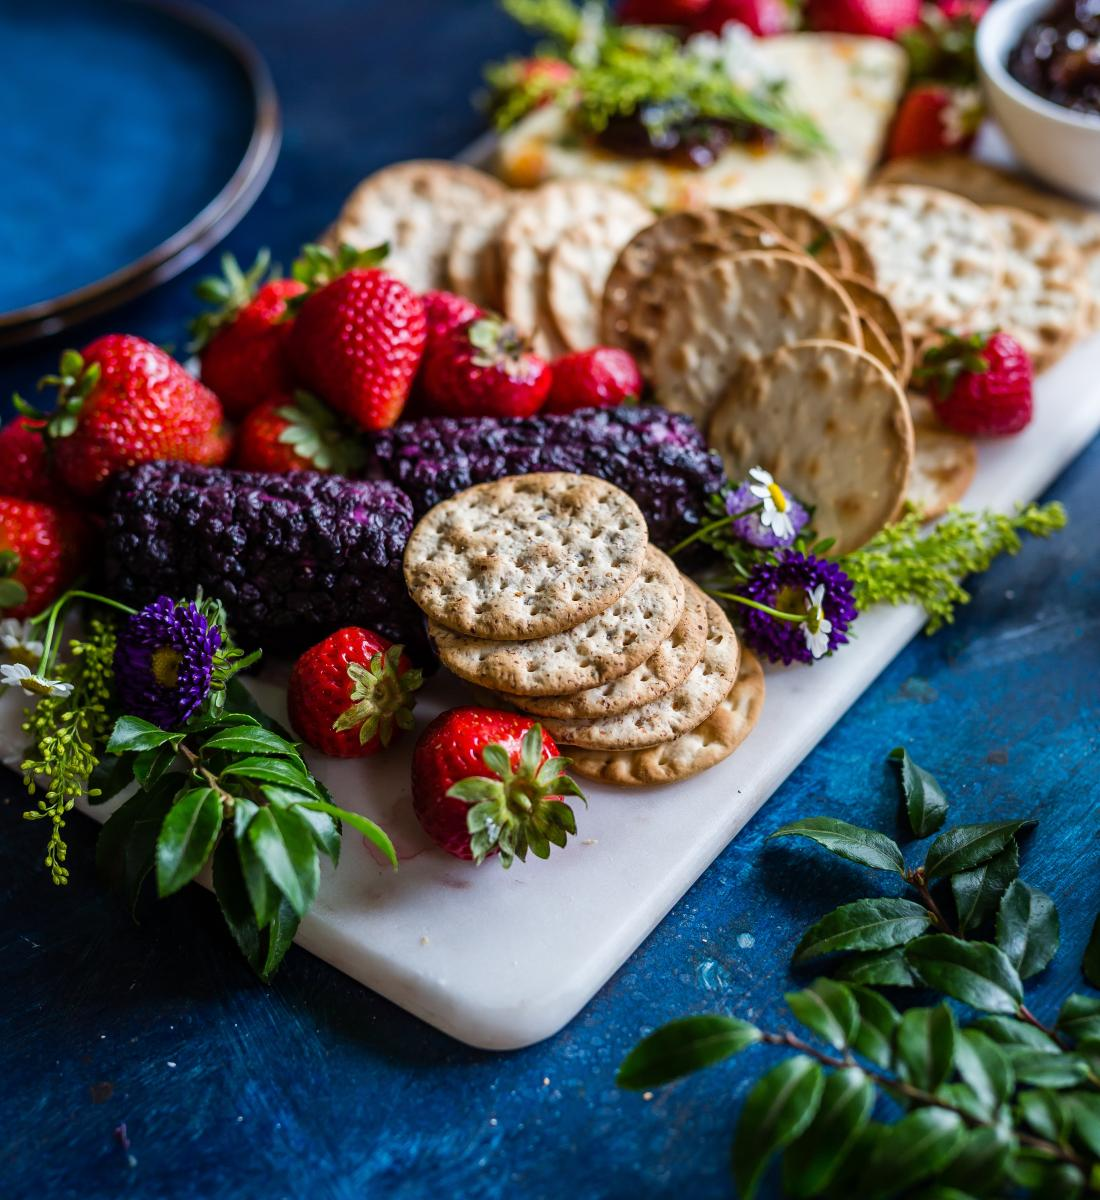 strawberries and crackers platter with flowers